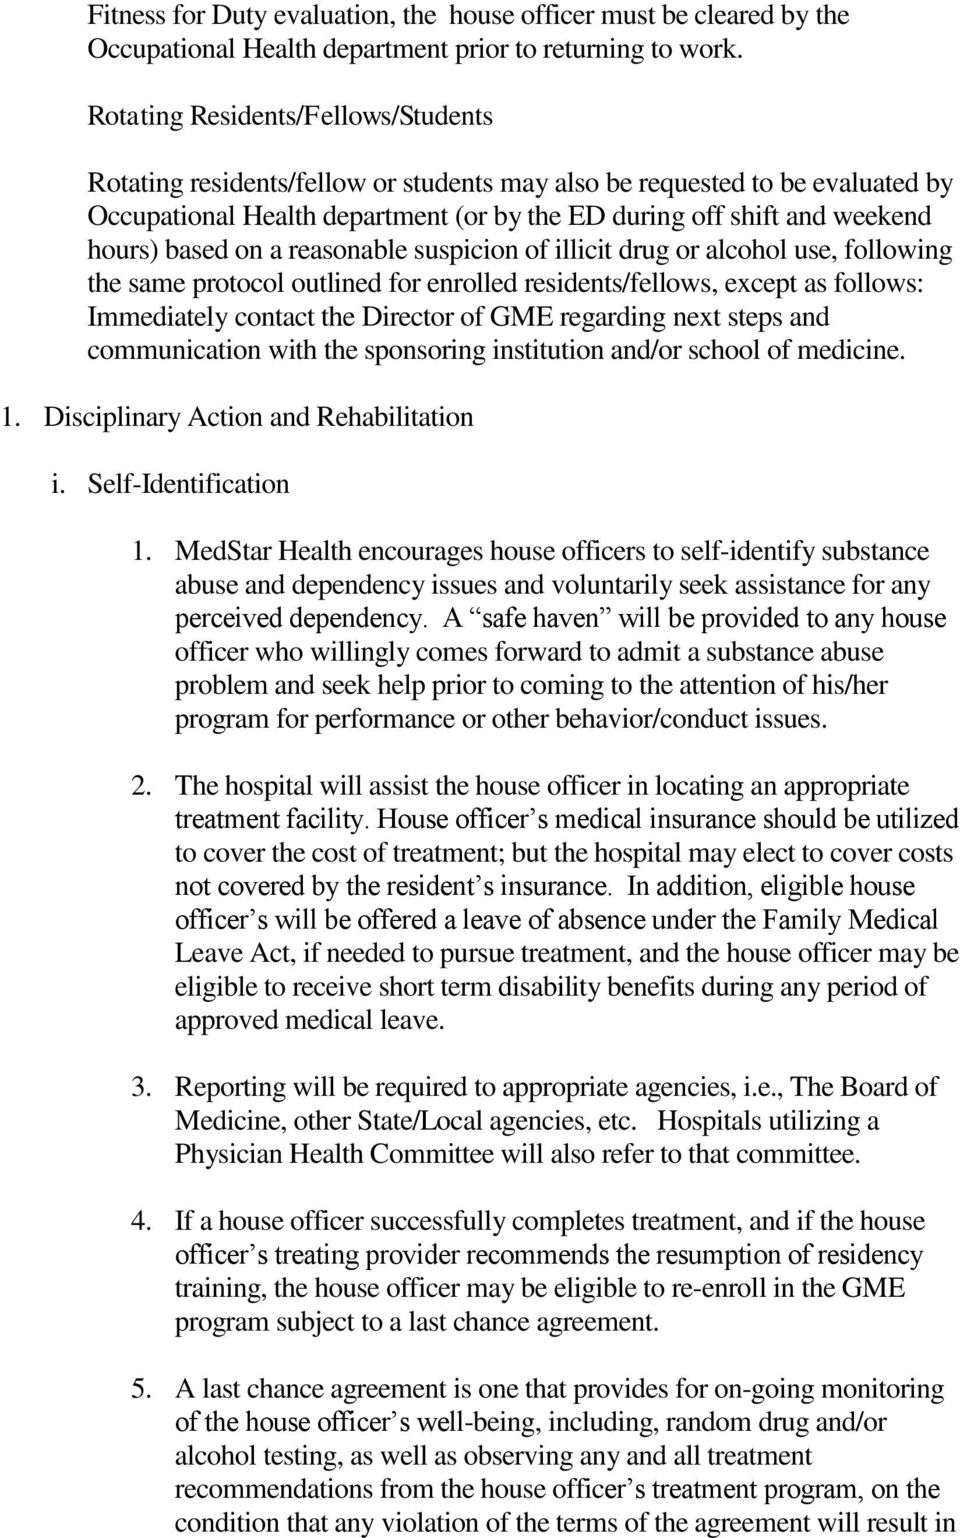 based on a reasonable suspicion of illicit drug or alcohol use, following the same protocol outlined for enrolled residents/fellows, except as follows: Immediately contact the Director of GME